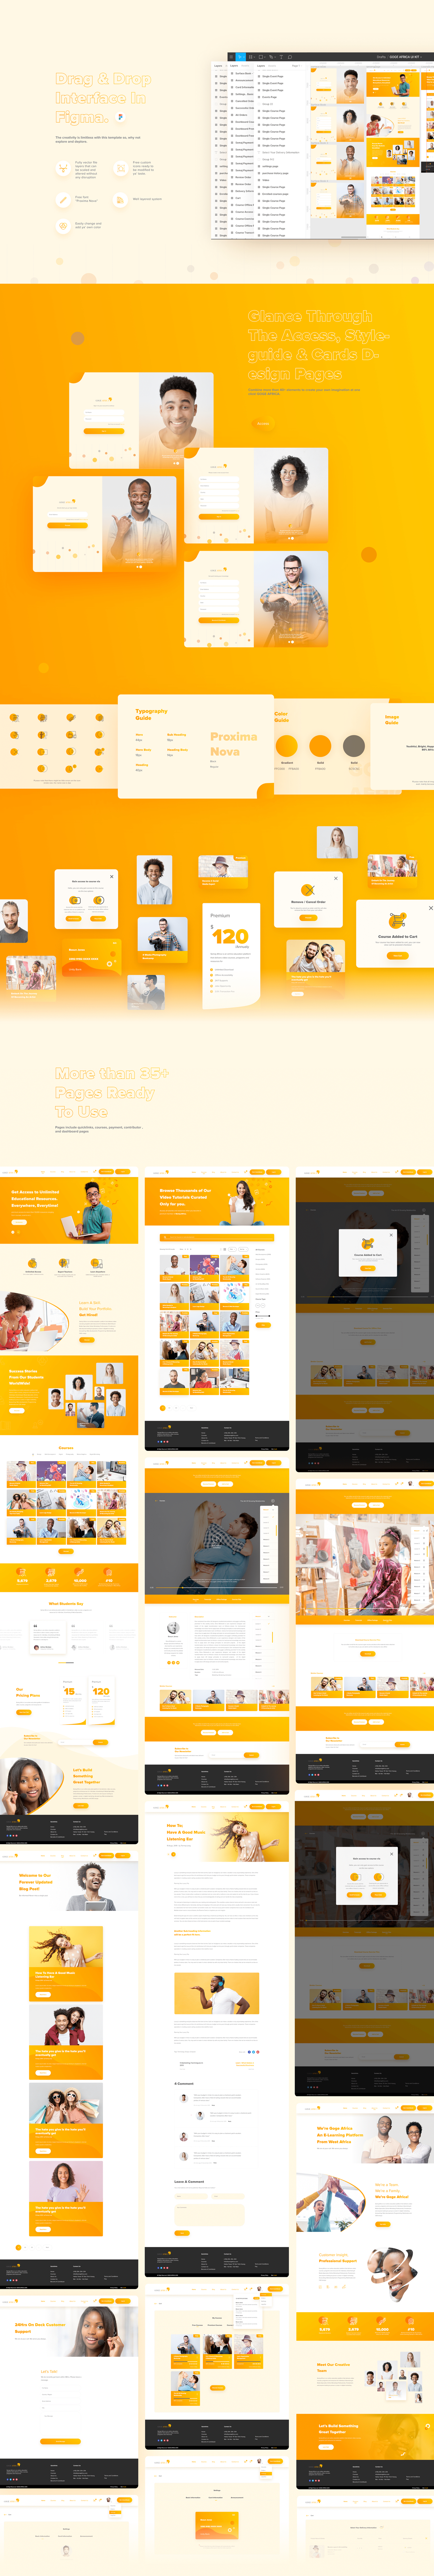 Goge Africa - UI Kit for Figma - 38+ screens and design elements e.g Landing-page, Quicklinks-page, Ecommerce, Dashboard...